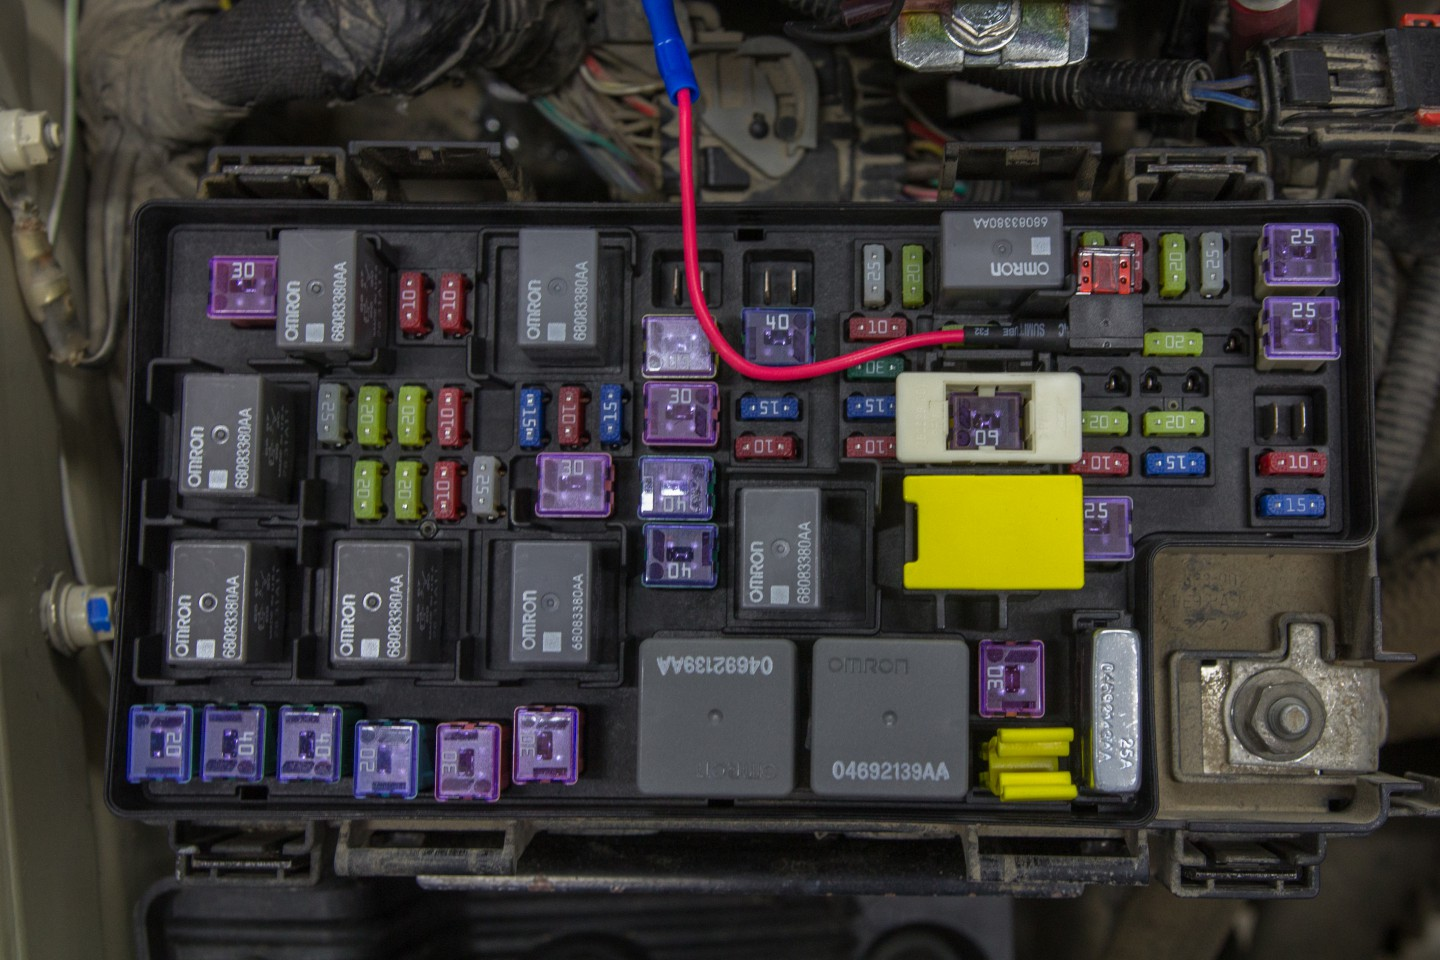 Jeep Jk Wrangler Engine Bay Diagram Wiring Library 2007 Mini Add A Circuit Fuse Holder In The Box Diy